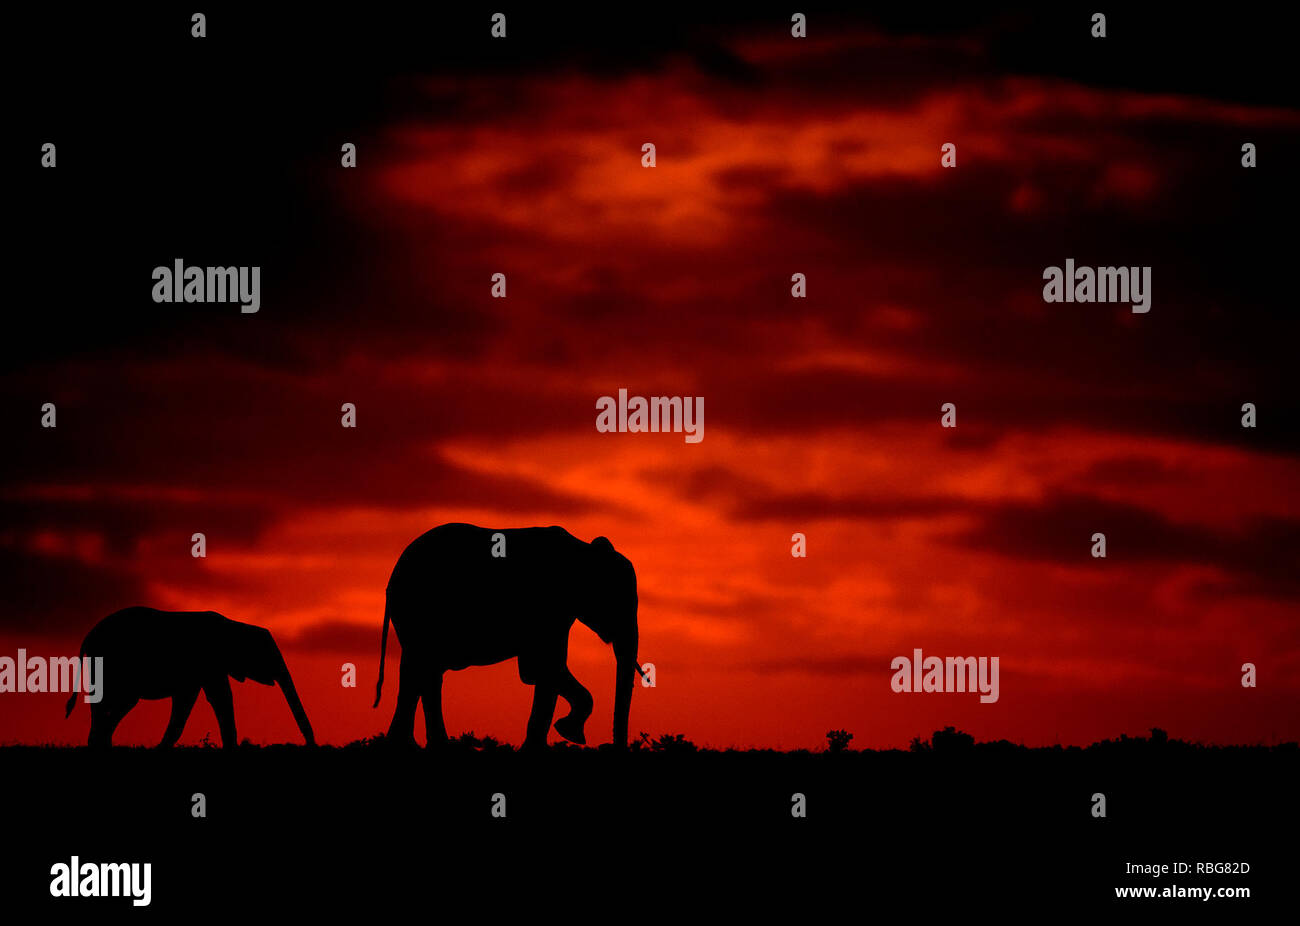 The Elephants. / DUSK TILL DAWN images show Africa's rich wildlife silhouetted during the beginning and the end of the day when the light reaches its perfect state of illumination. A hippopotamus is shown lurking in the water, whilst other stunning photographs give an intimate glimpse of lions, giraffes, kudu's, flamingo's, elephants, leopards, rhino's and zebras in this beautiful silhouetted technique. Evan a swarm of bats can be seen flying across the African sunset. Other dramatic photos from across southern and eastern Africa show an injured wildebeest evading a fire that has swept across  Stock Photo